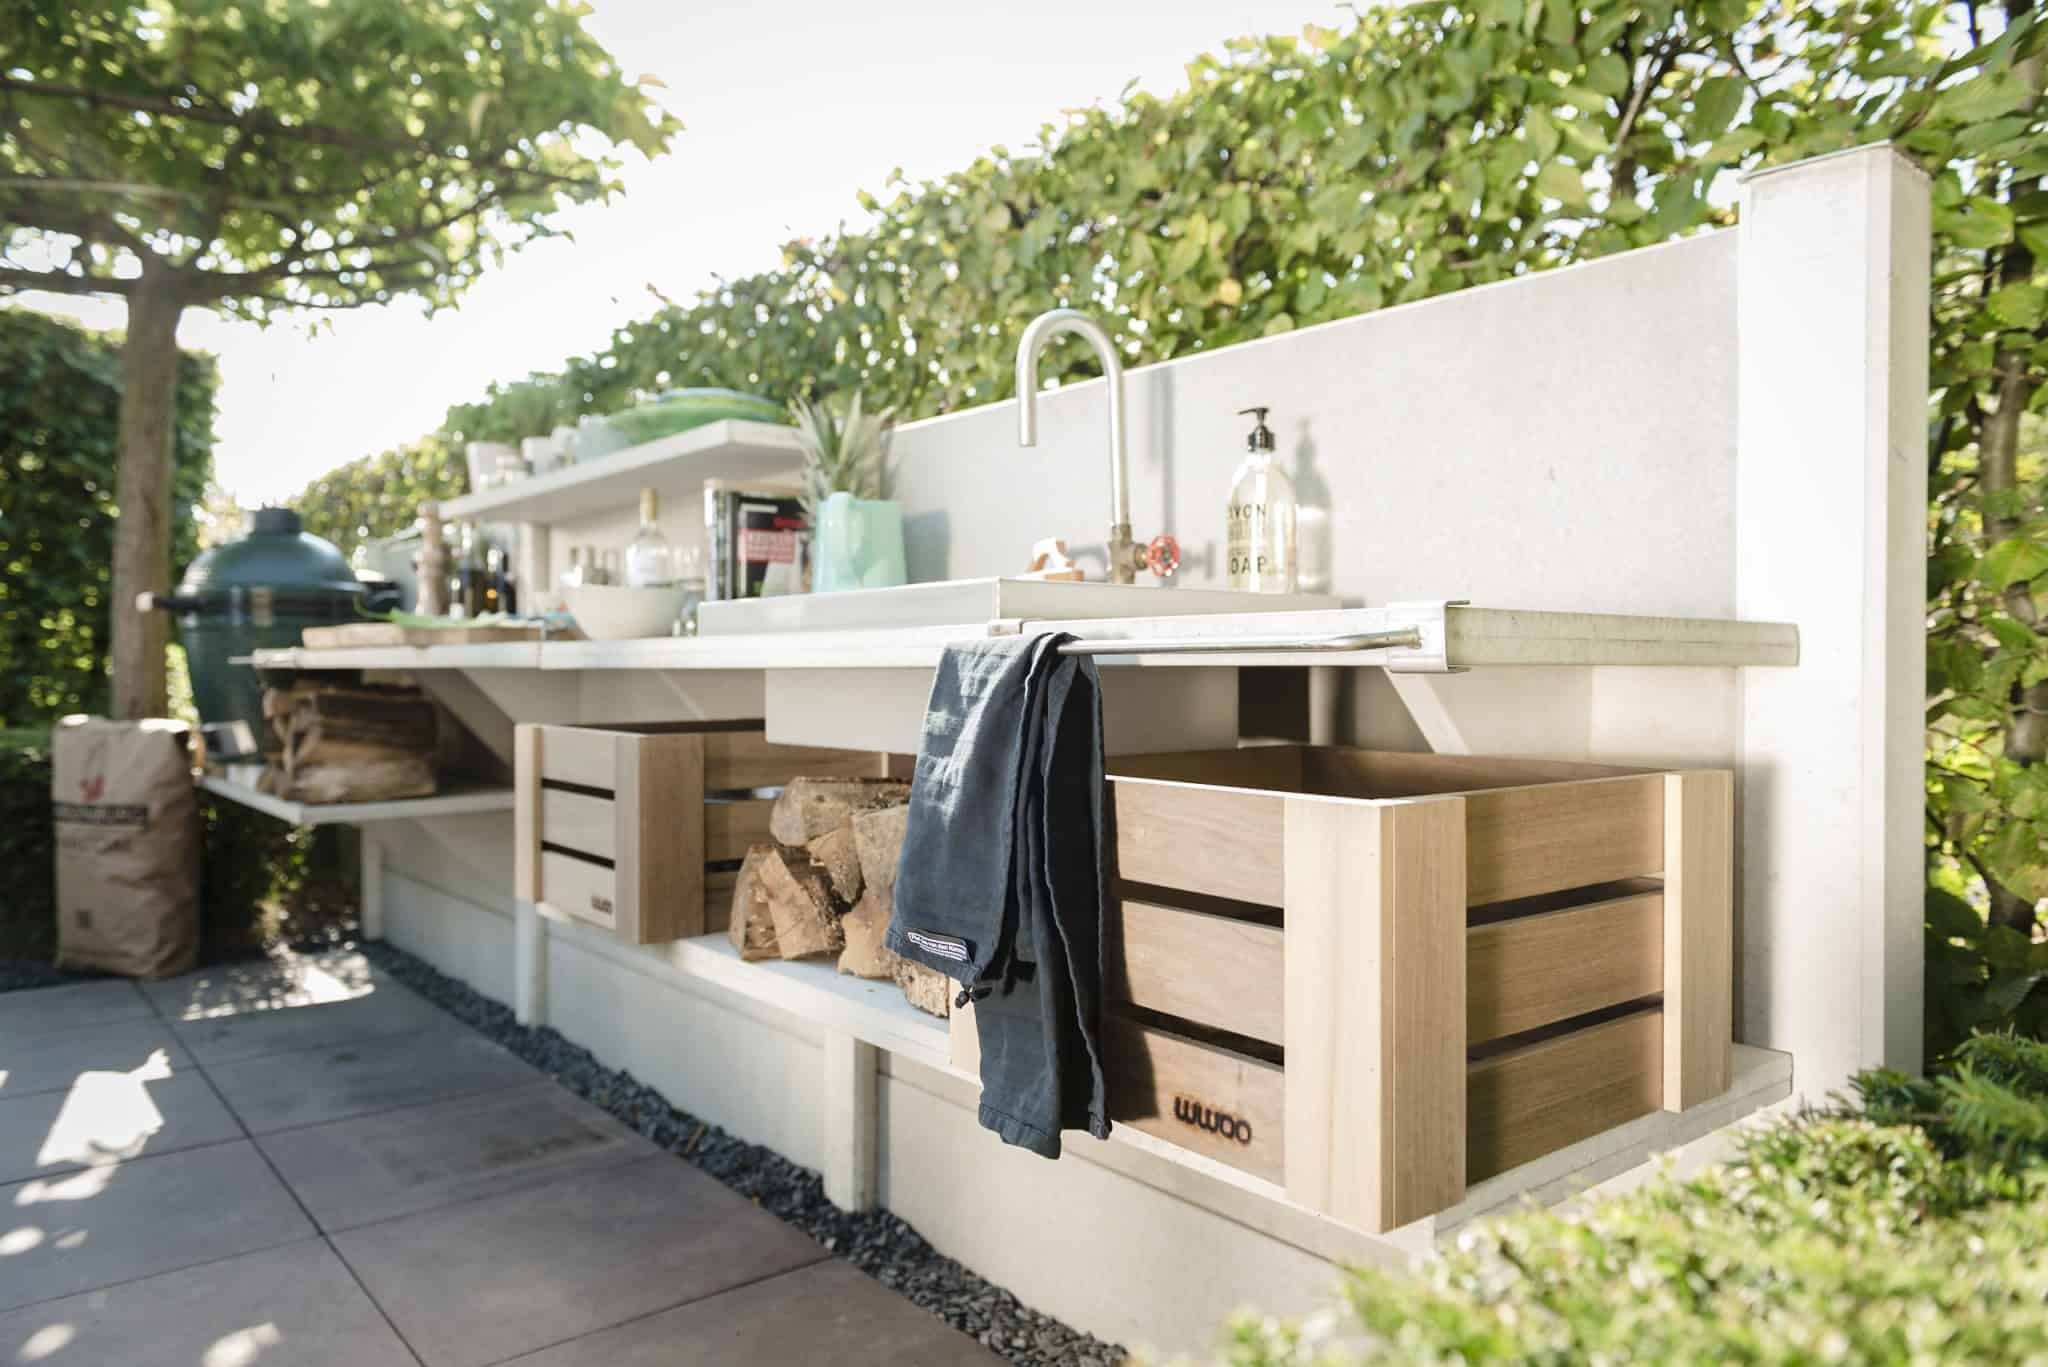 WWOO outdoor kitchen is made from concrete segments